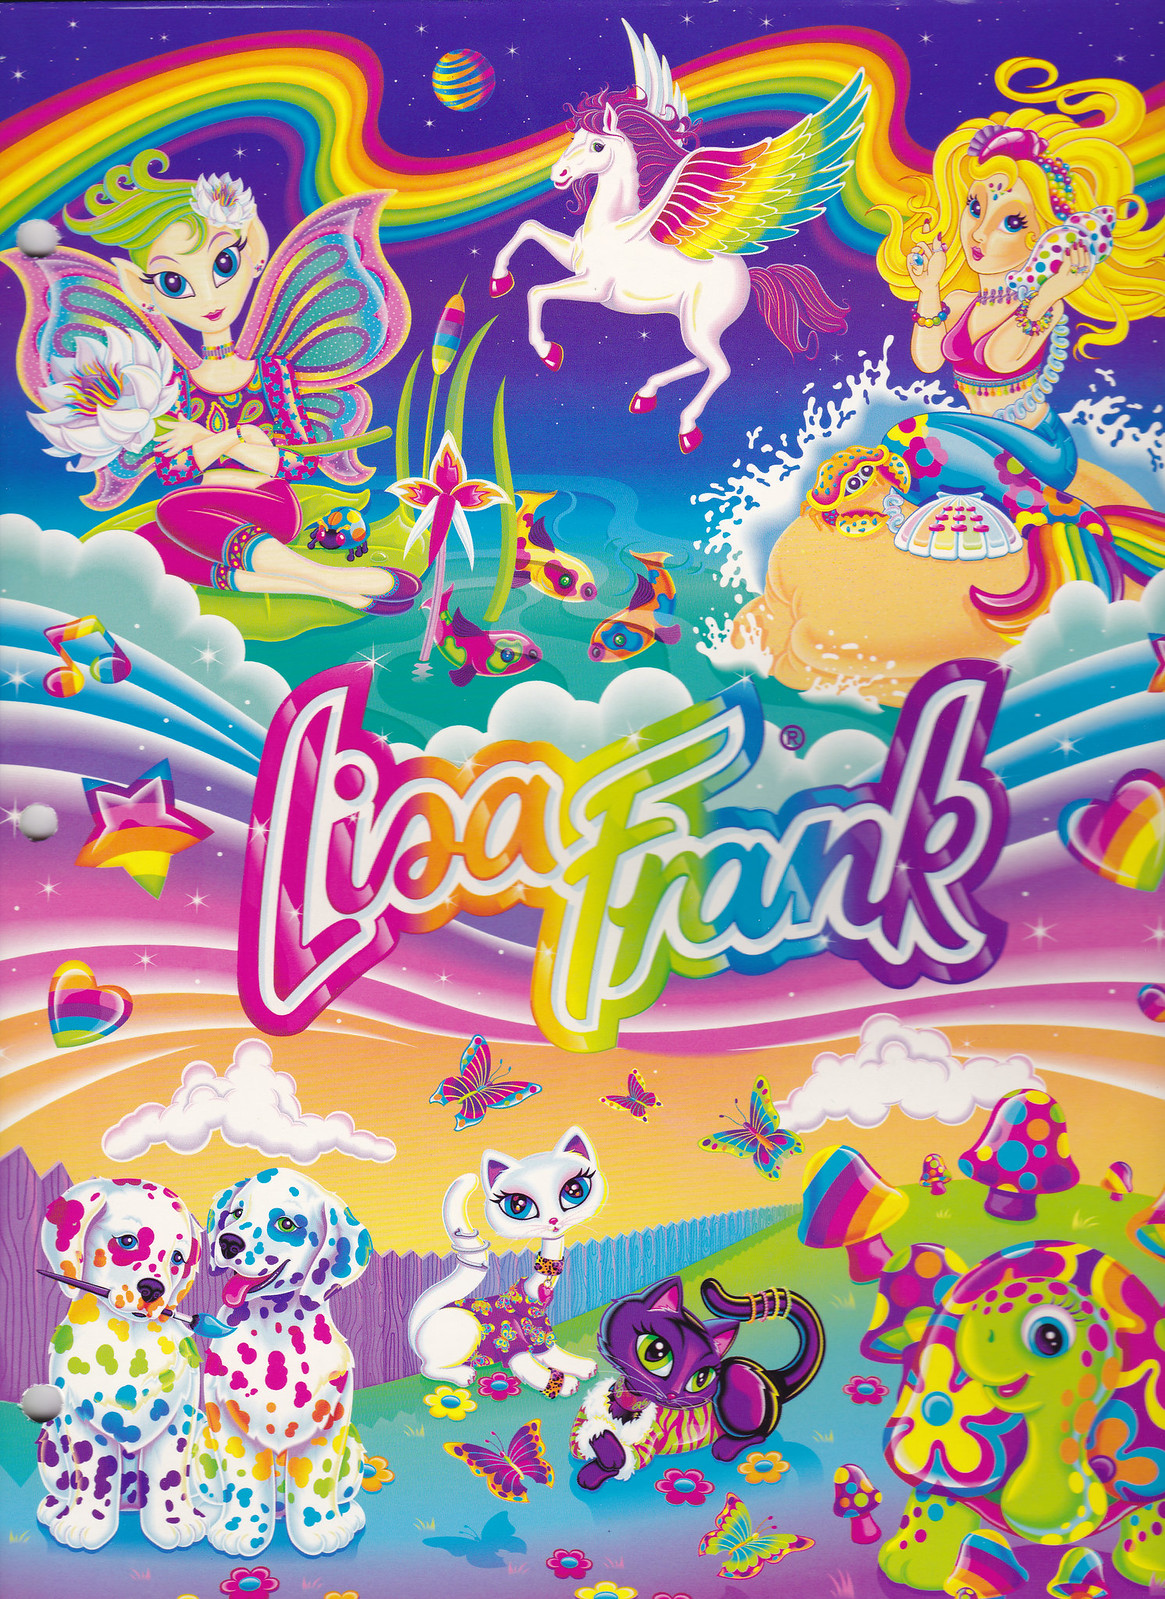 Lisa Frank Collage Lisa Frank Character Collage